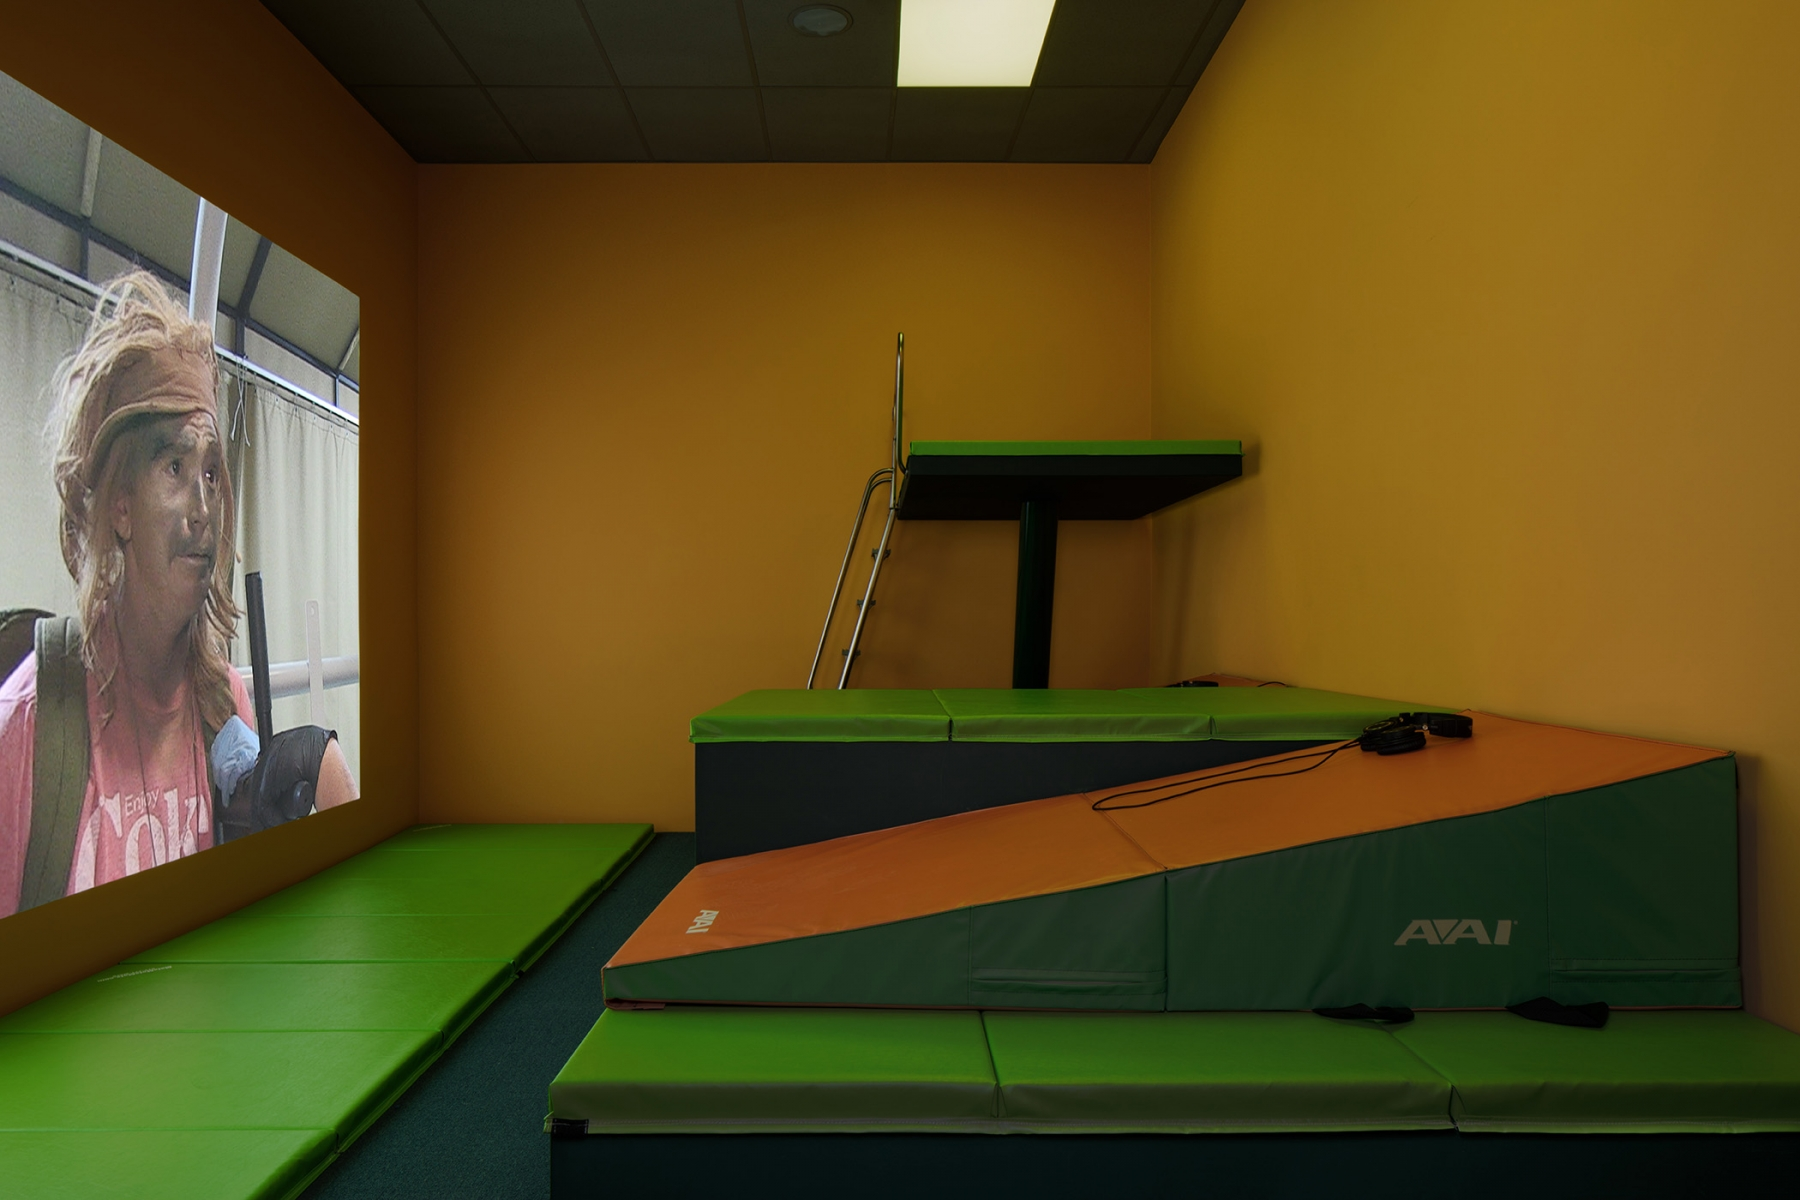 Lizzie fitchryan trecartin artists regen projects components gym mats custom diving bunk wooden platforms message boards carpet paint drop ceiling lighting ambient sound original installation greentooth Choice Image